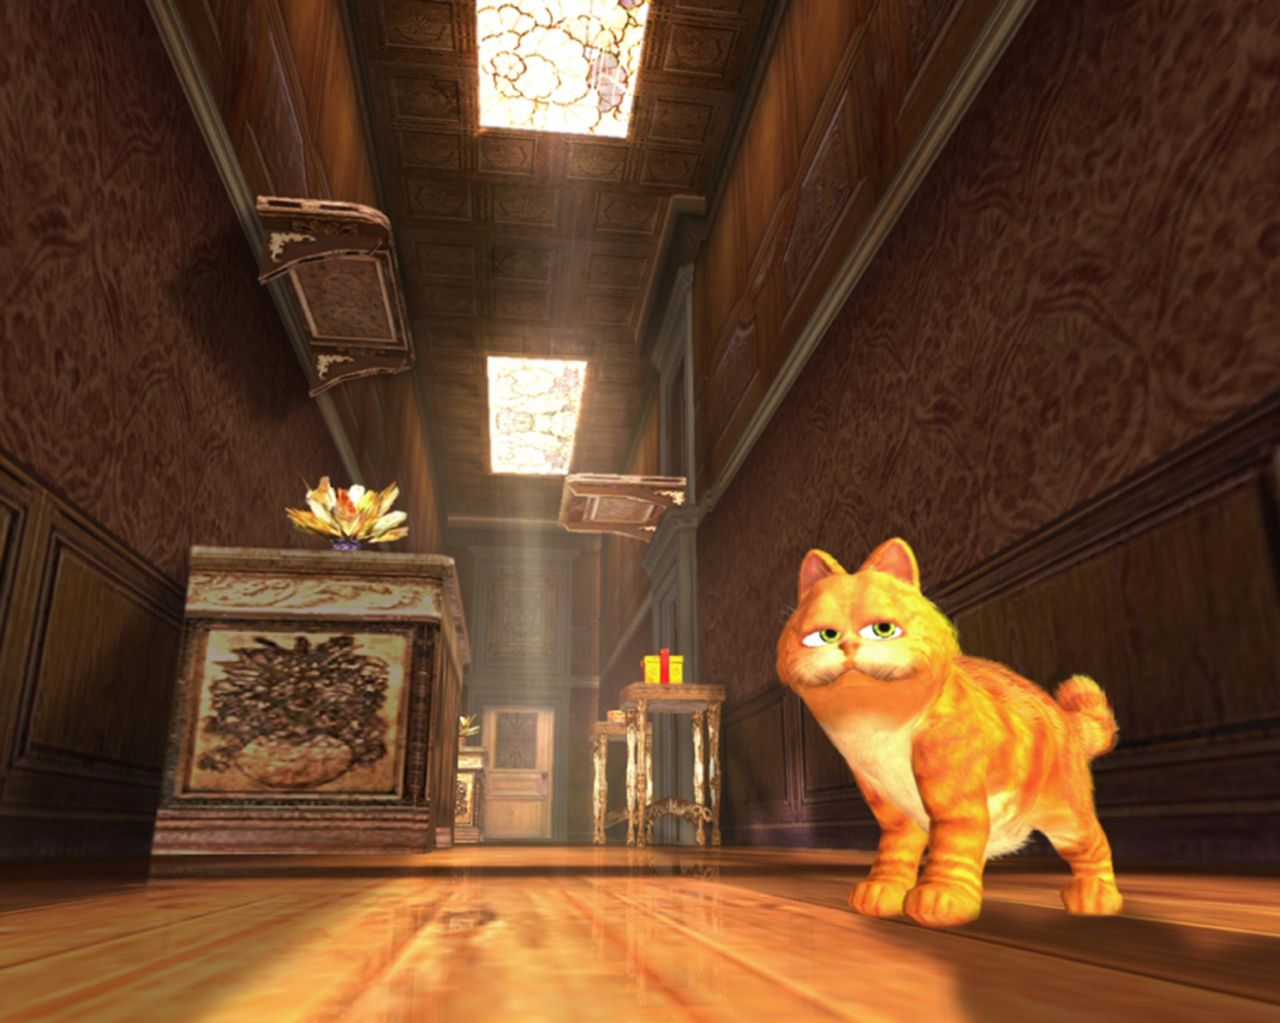 Pantallazo de Garfield 2 (A Tale of Two Kitties) para PC